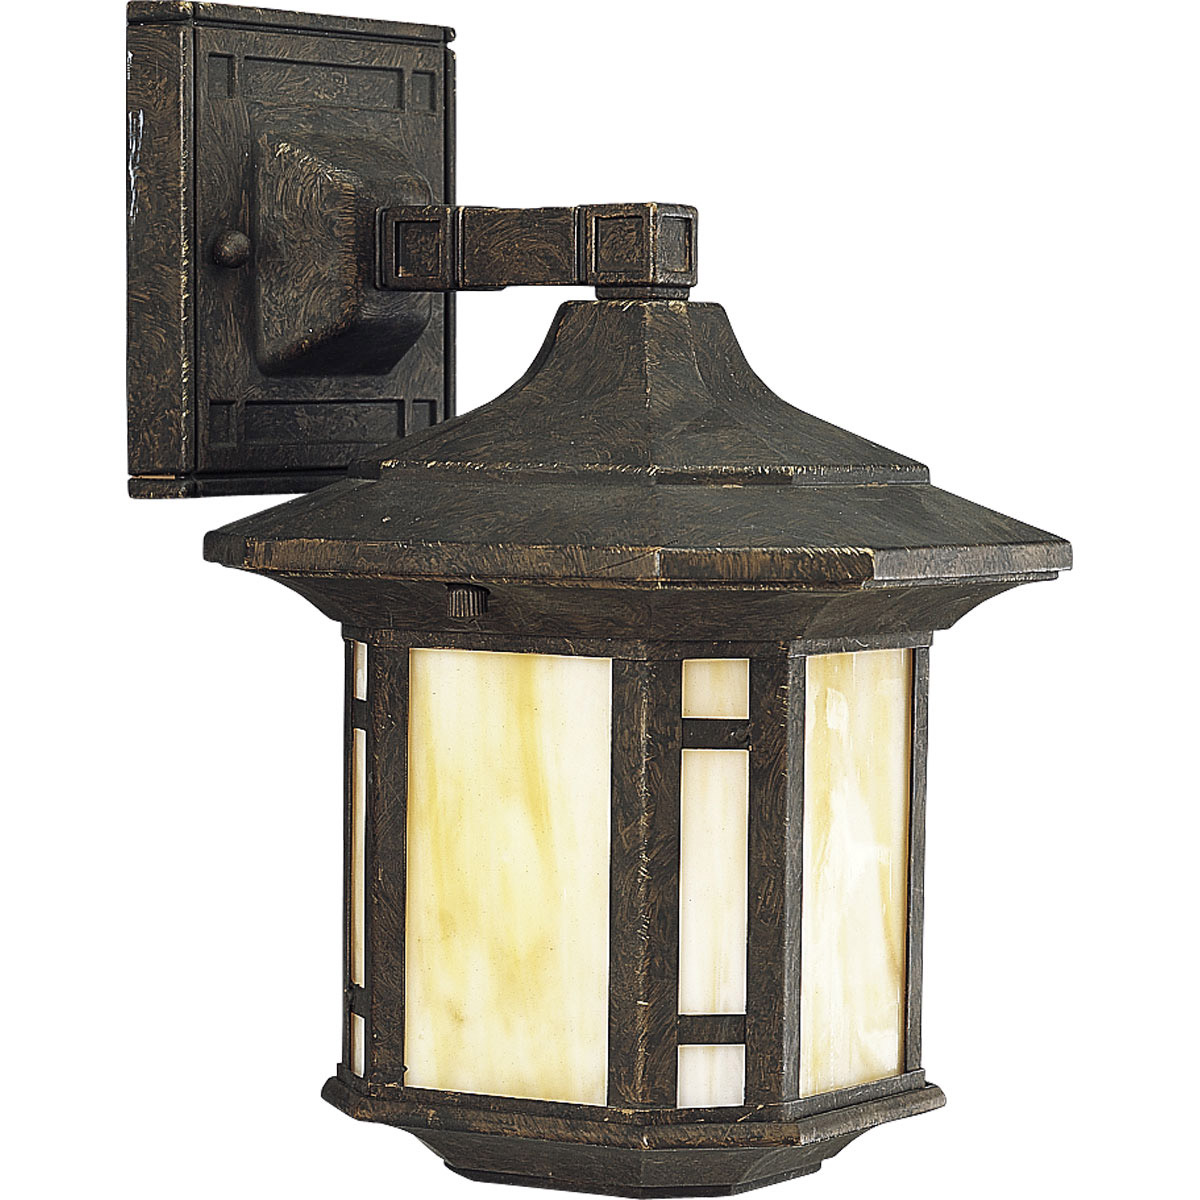 Progress Lighting P5628 46 Arts And Crafts Outdoor Wall Mount Lantern